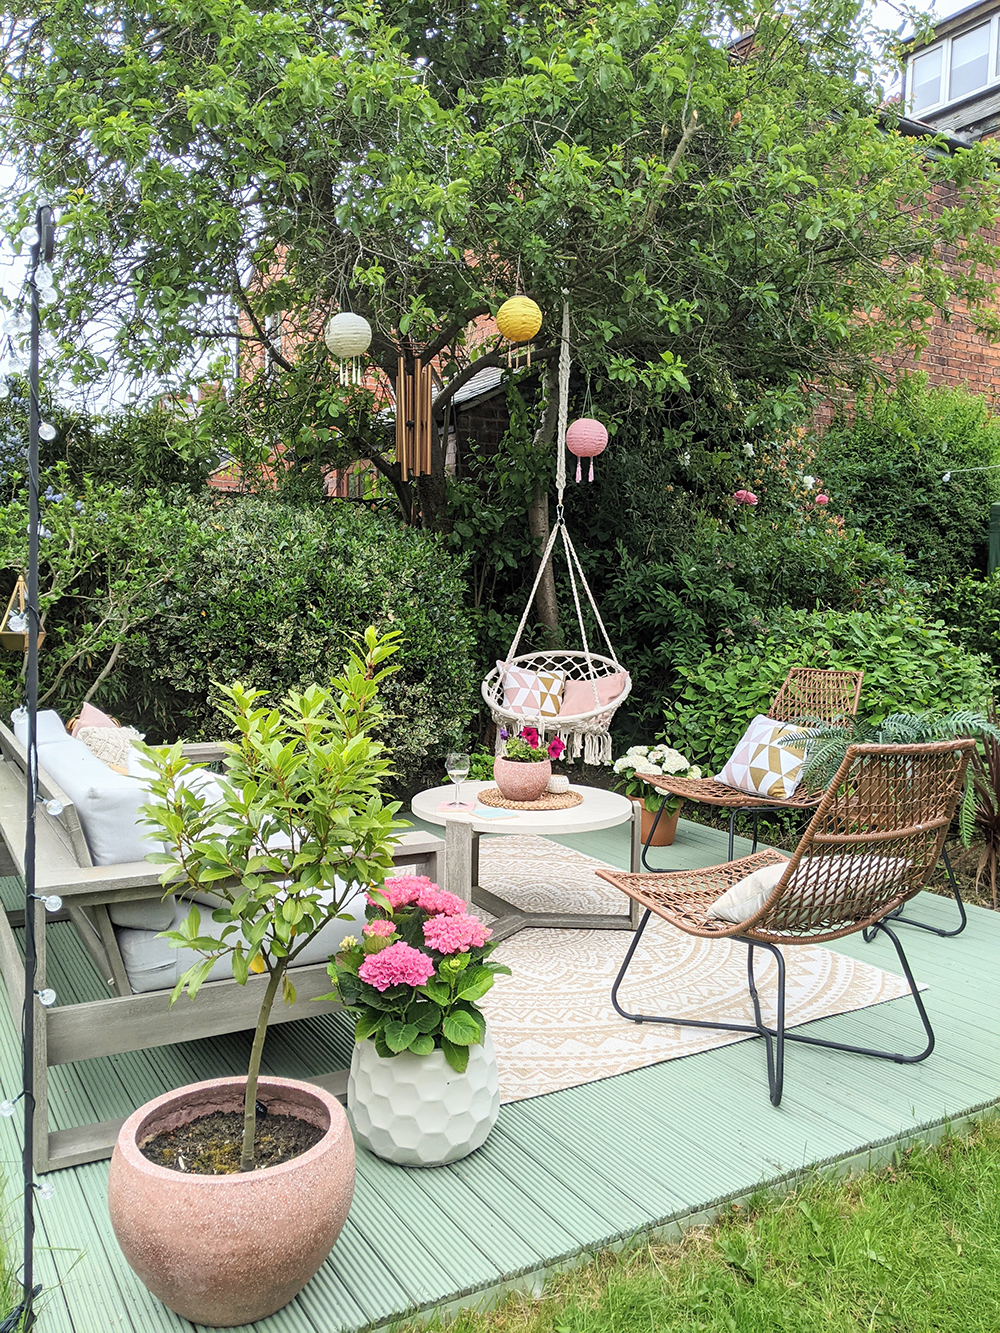 garden deck styling in pinks and green boho glam